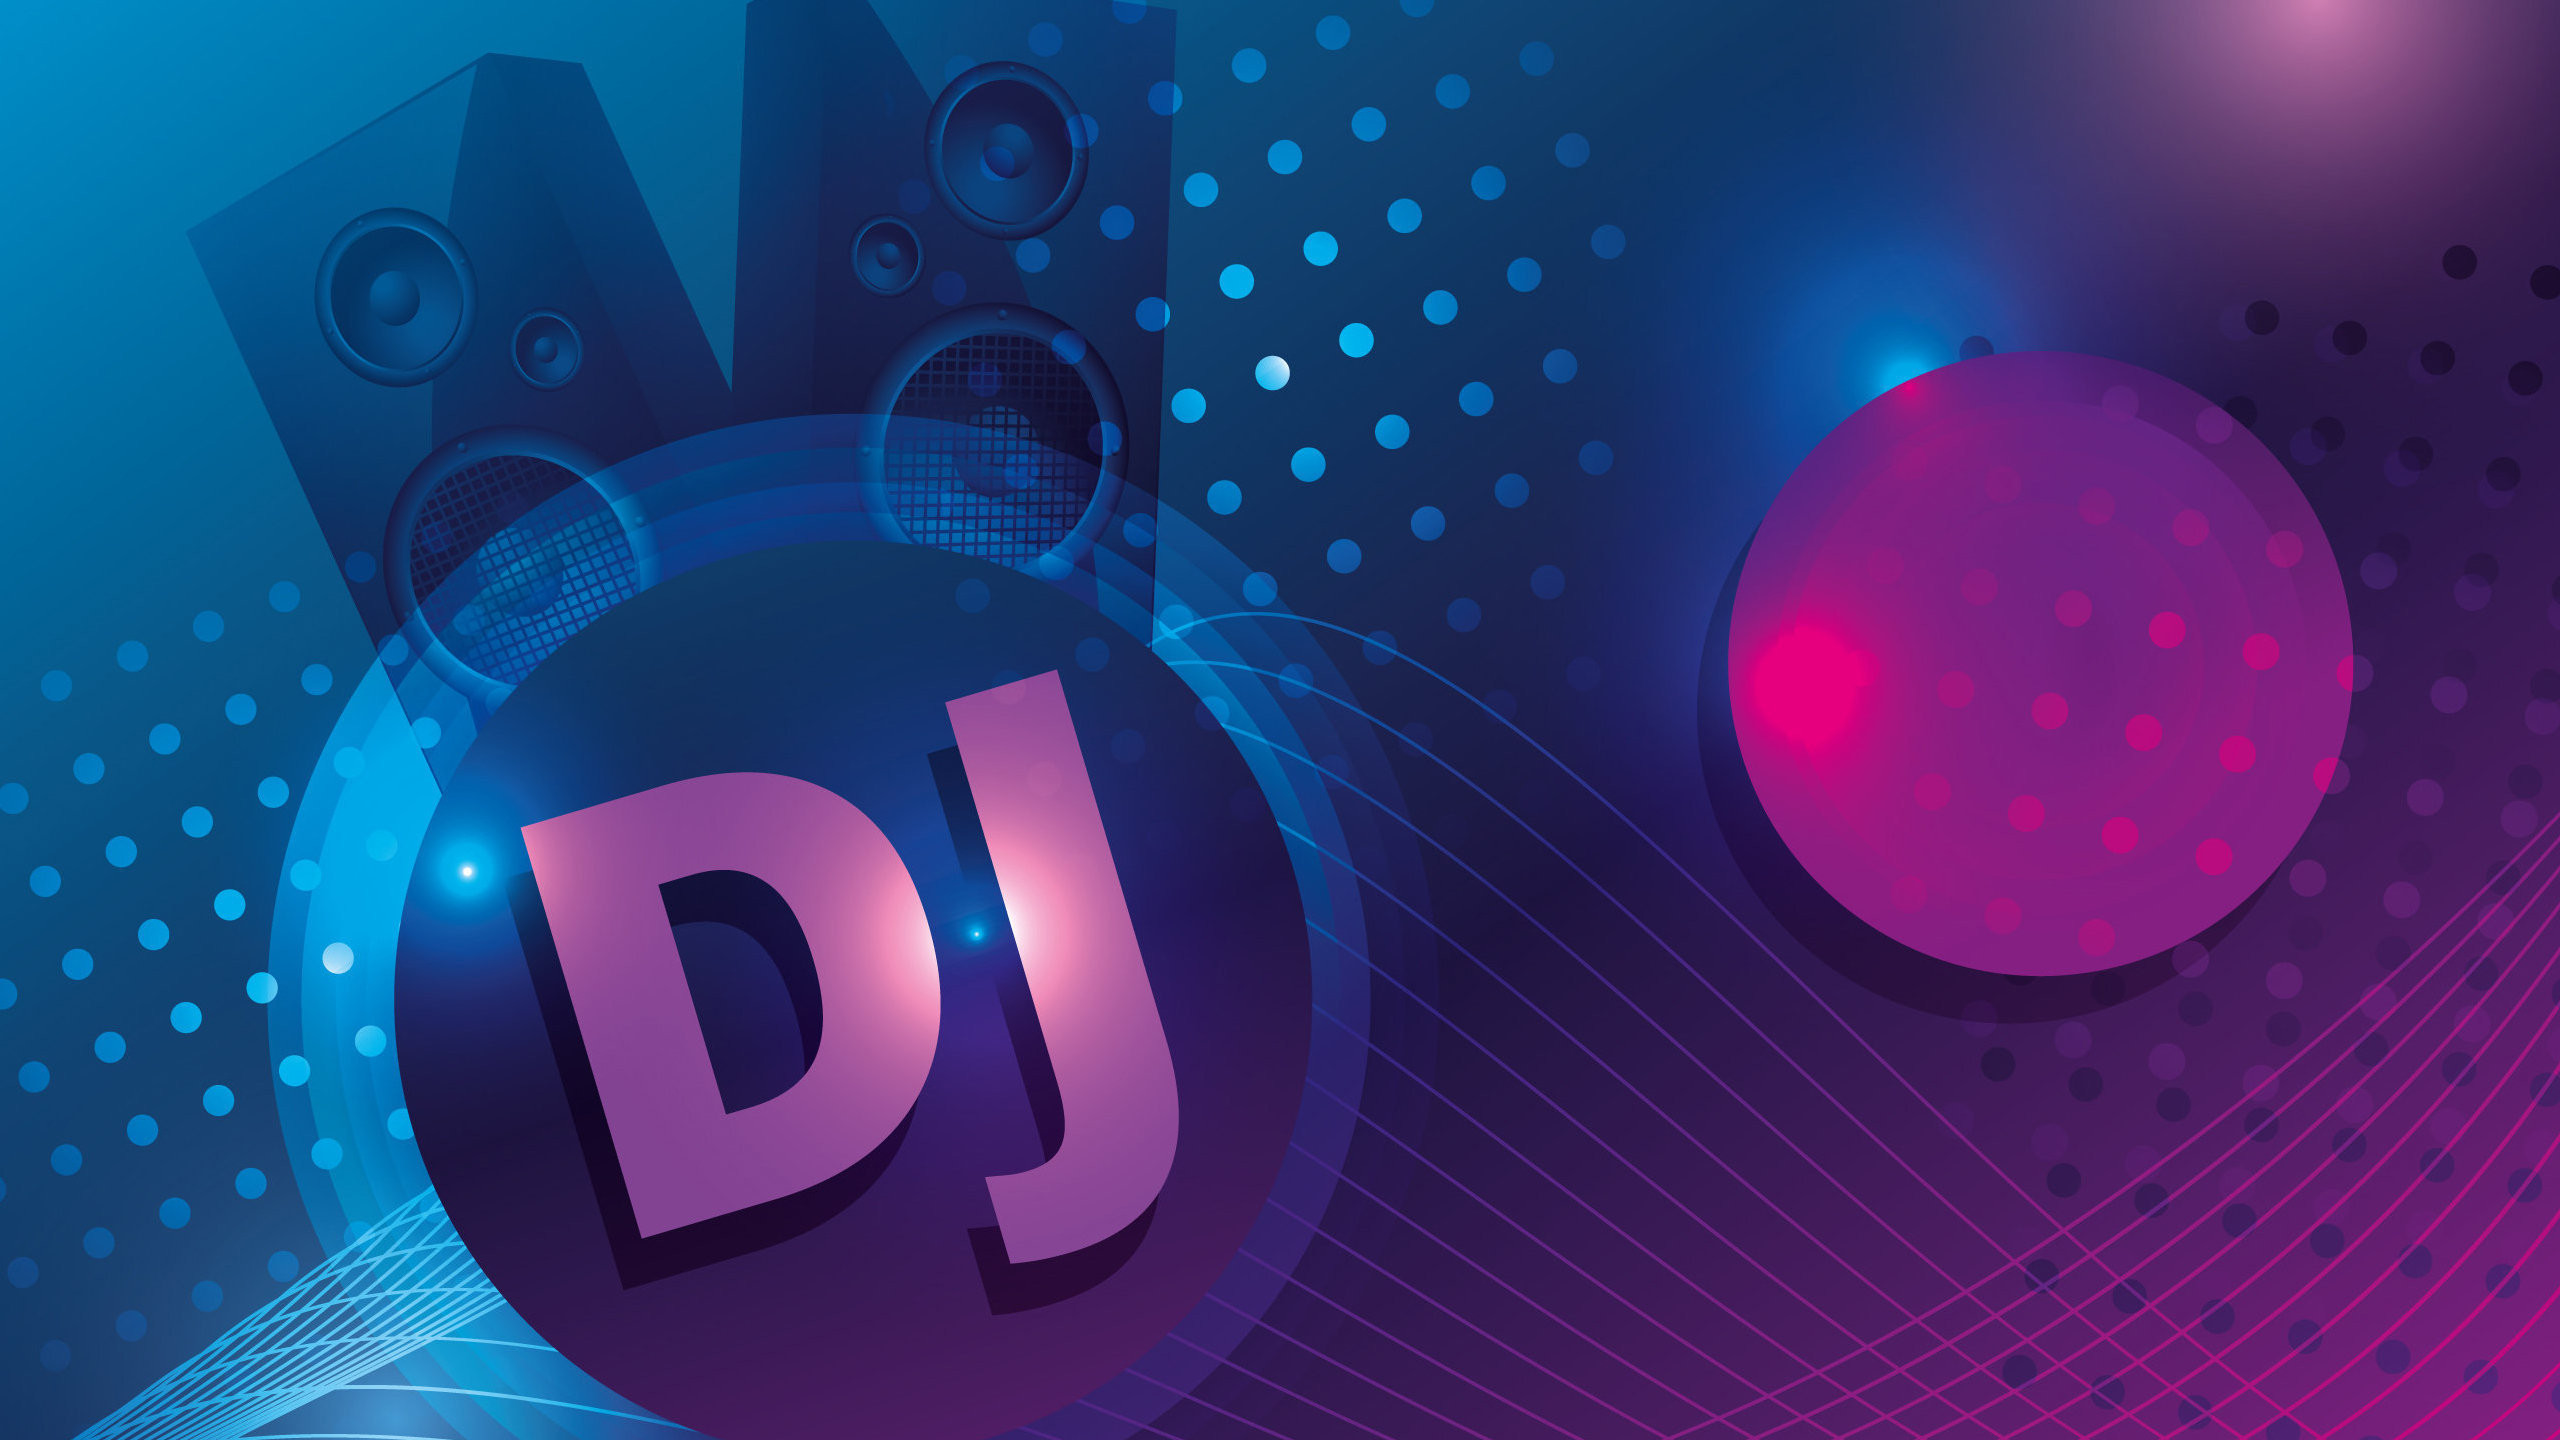 Wallpapers Hd 3d Music: Cool Dj Wallpapers (56+ Background Pictures